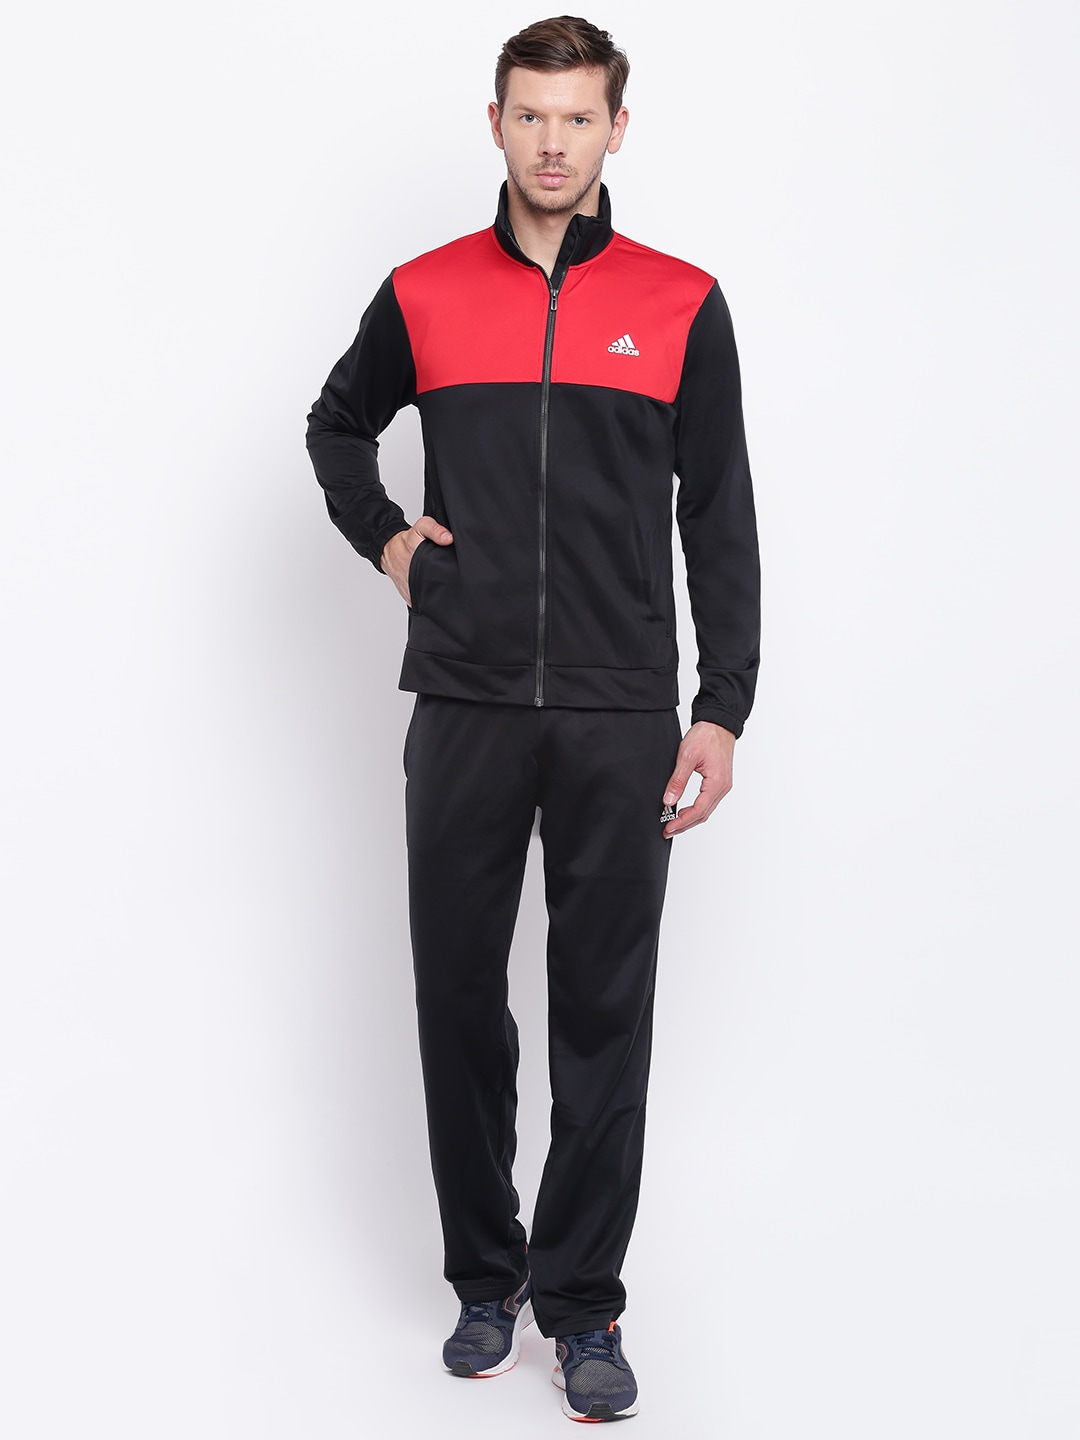 46a0ac8fac4 Adidas Tracksuits - Buy Adidas Tracksuits Online in India